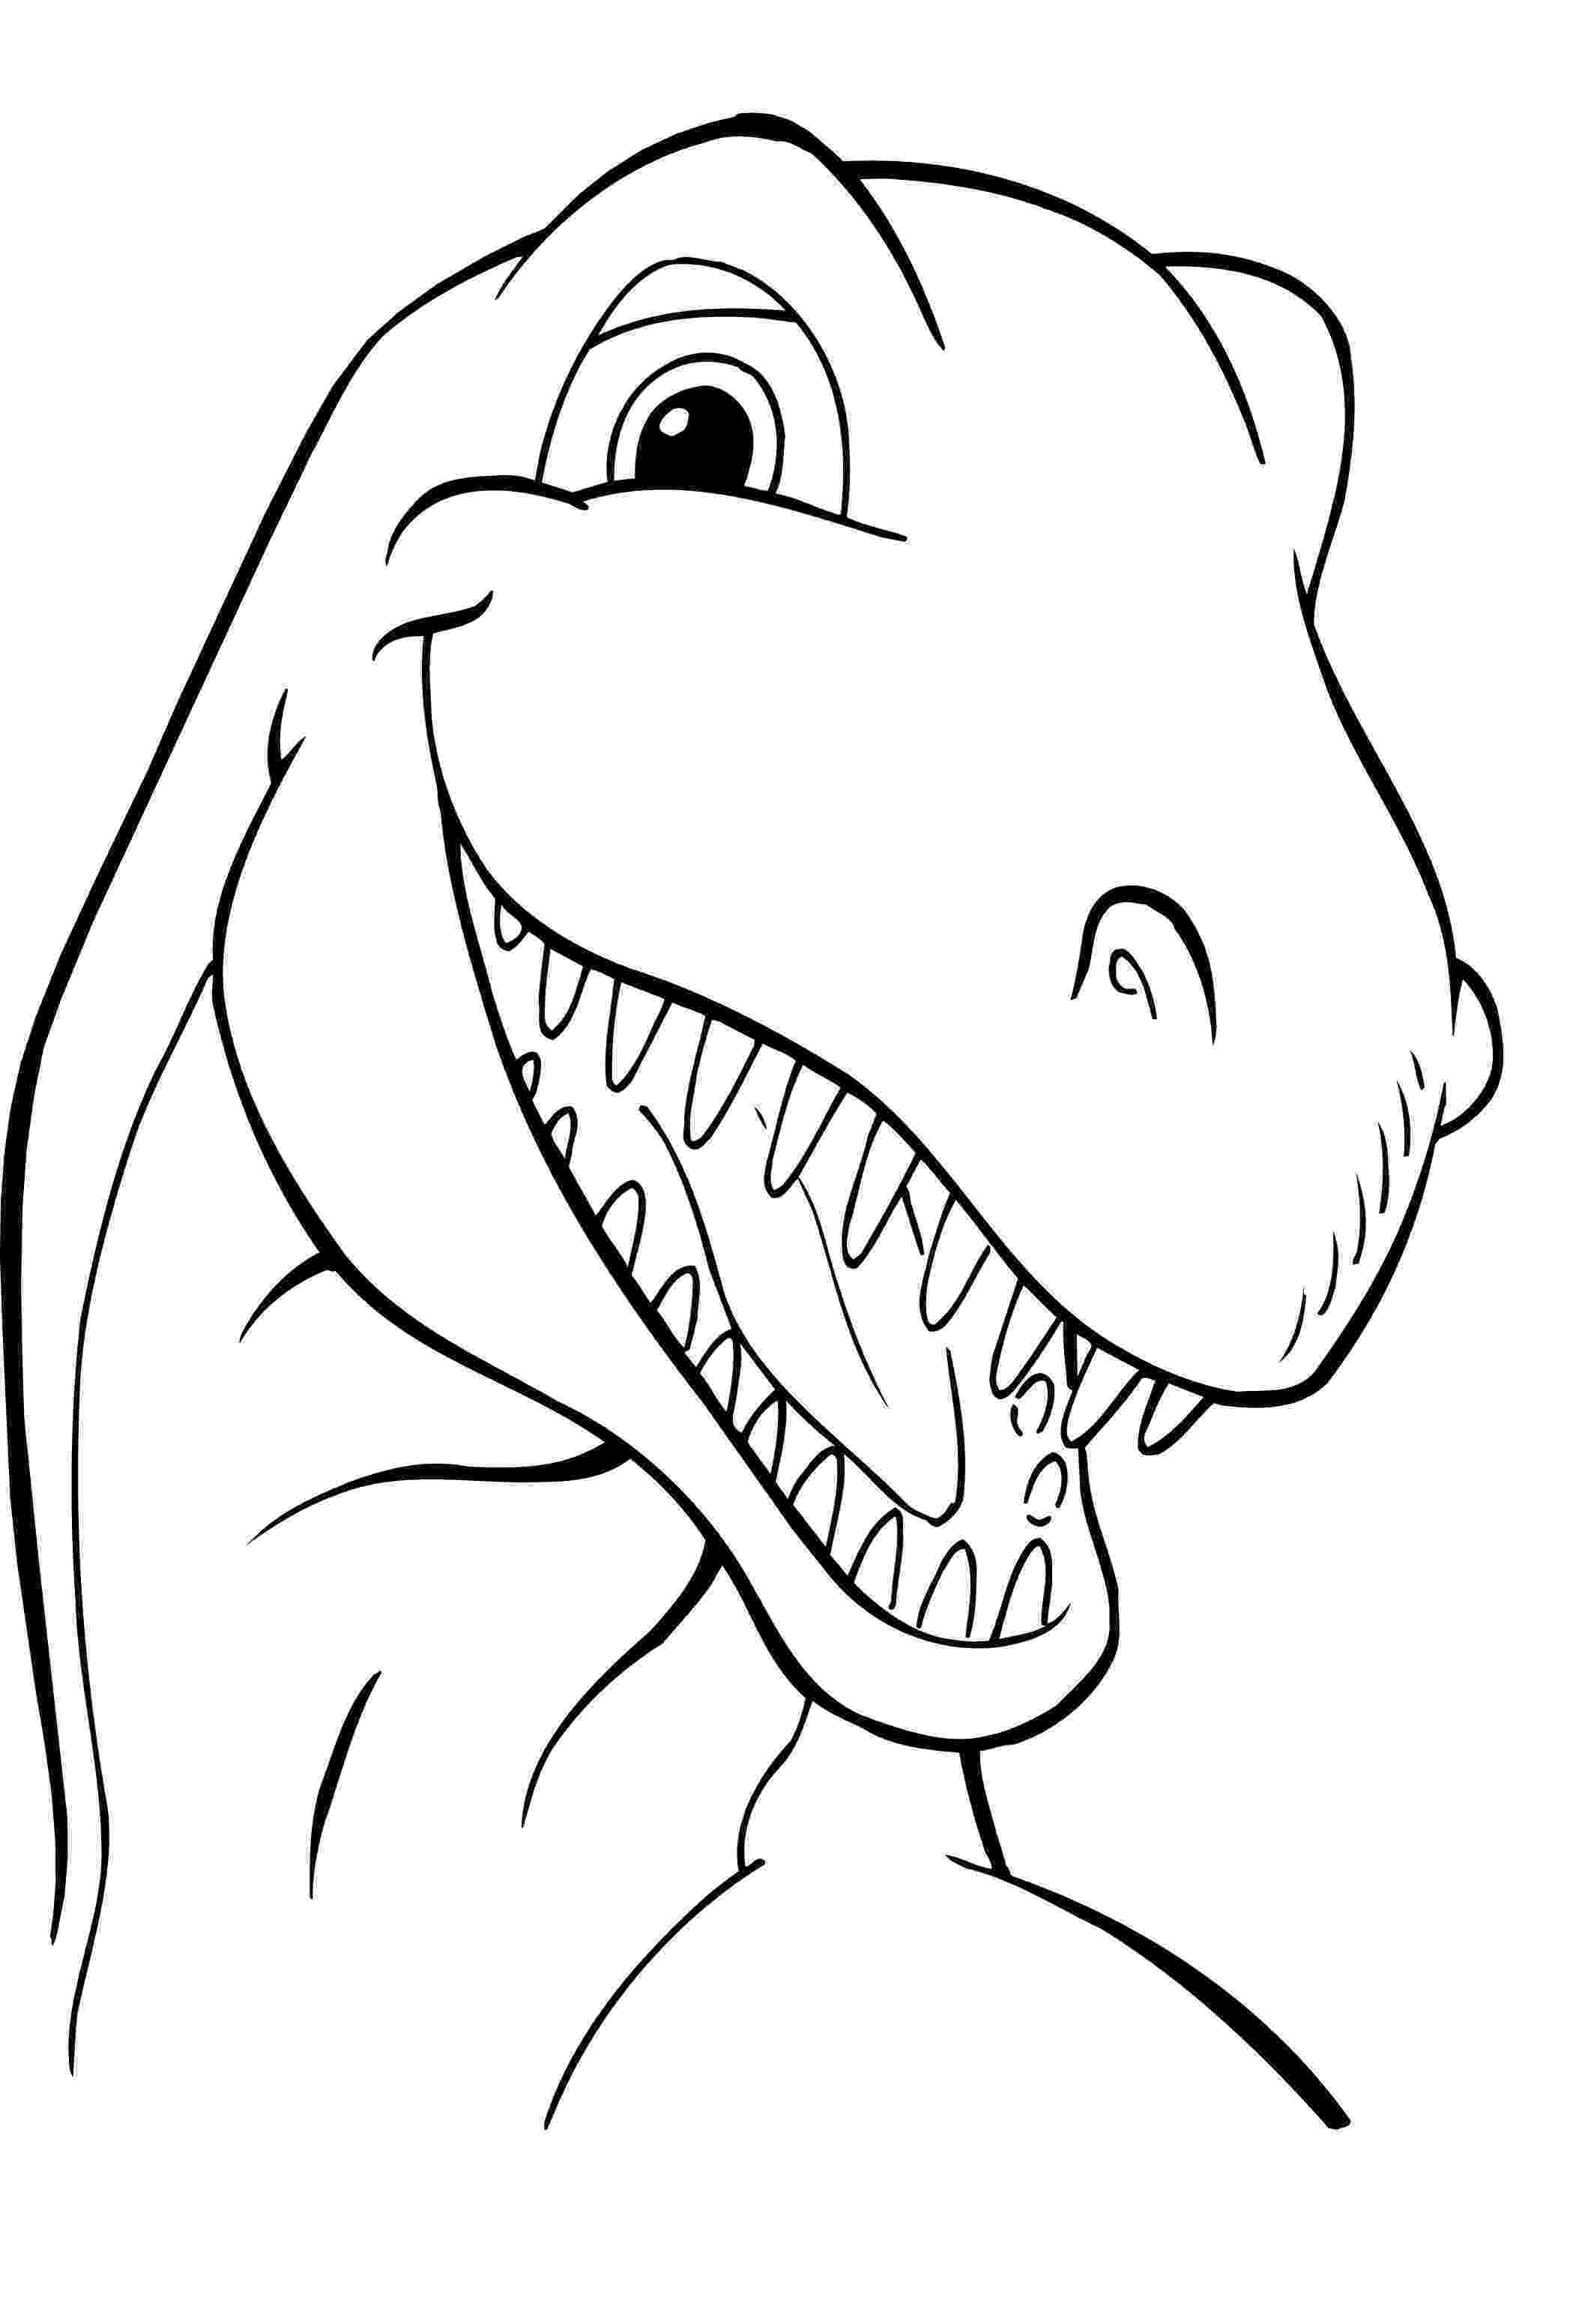 dinosaur colouring pages free printables free printable dinosaur coloring pages for kids printables dinosaur free colouring pages